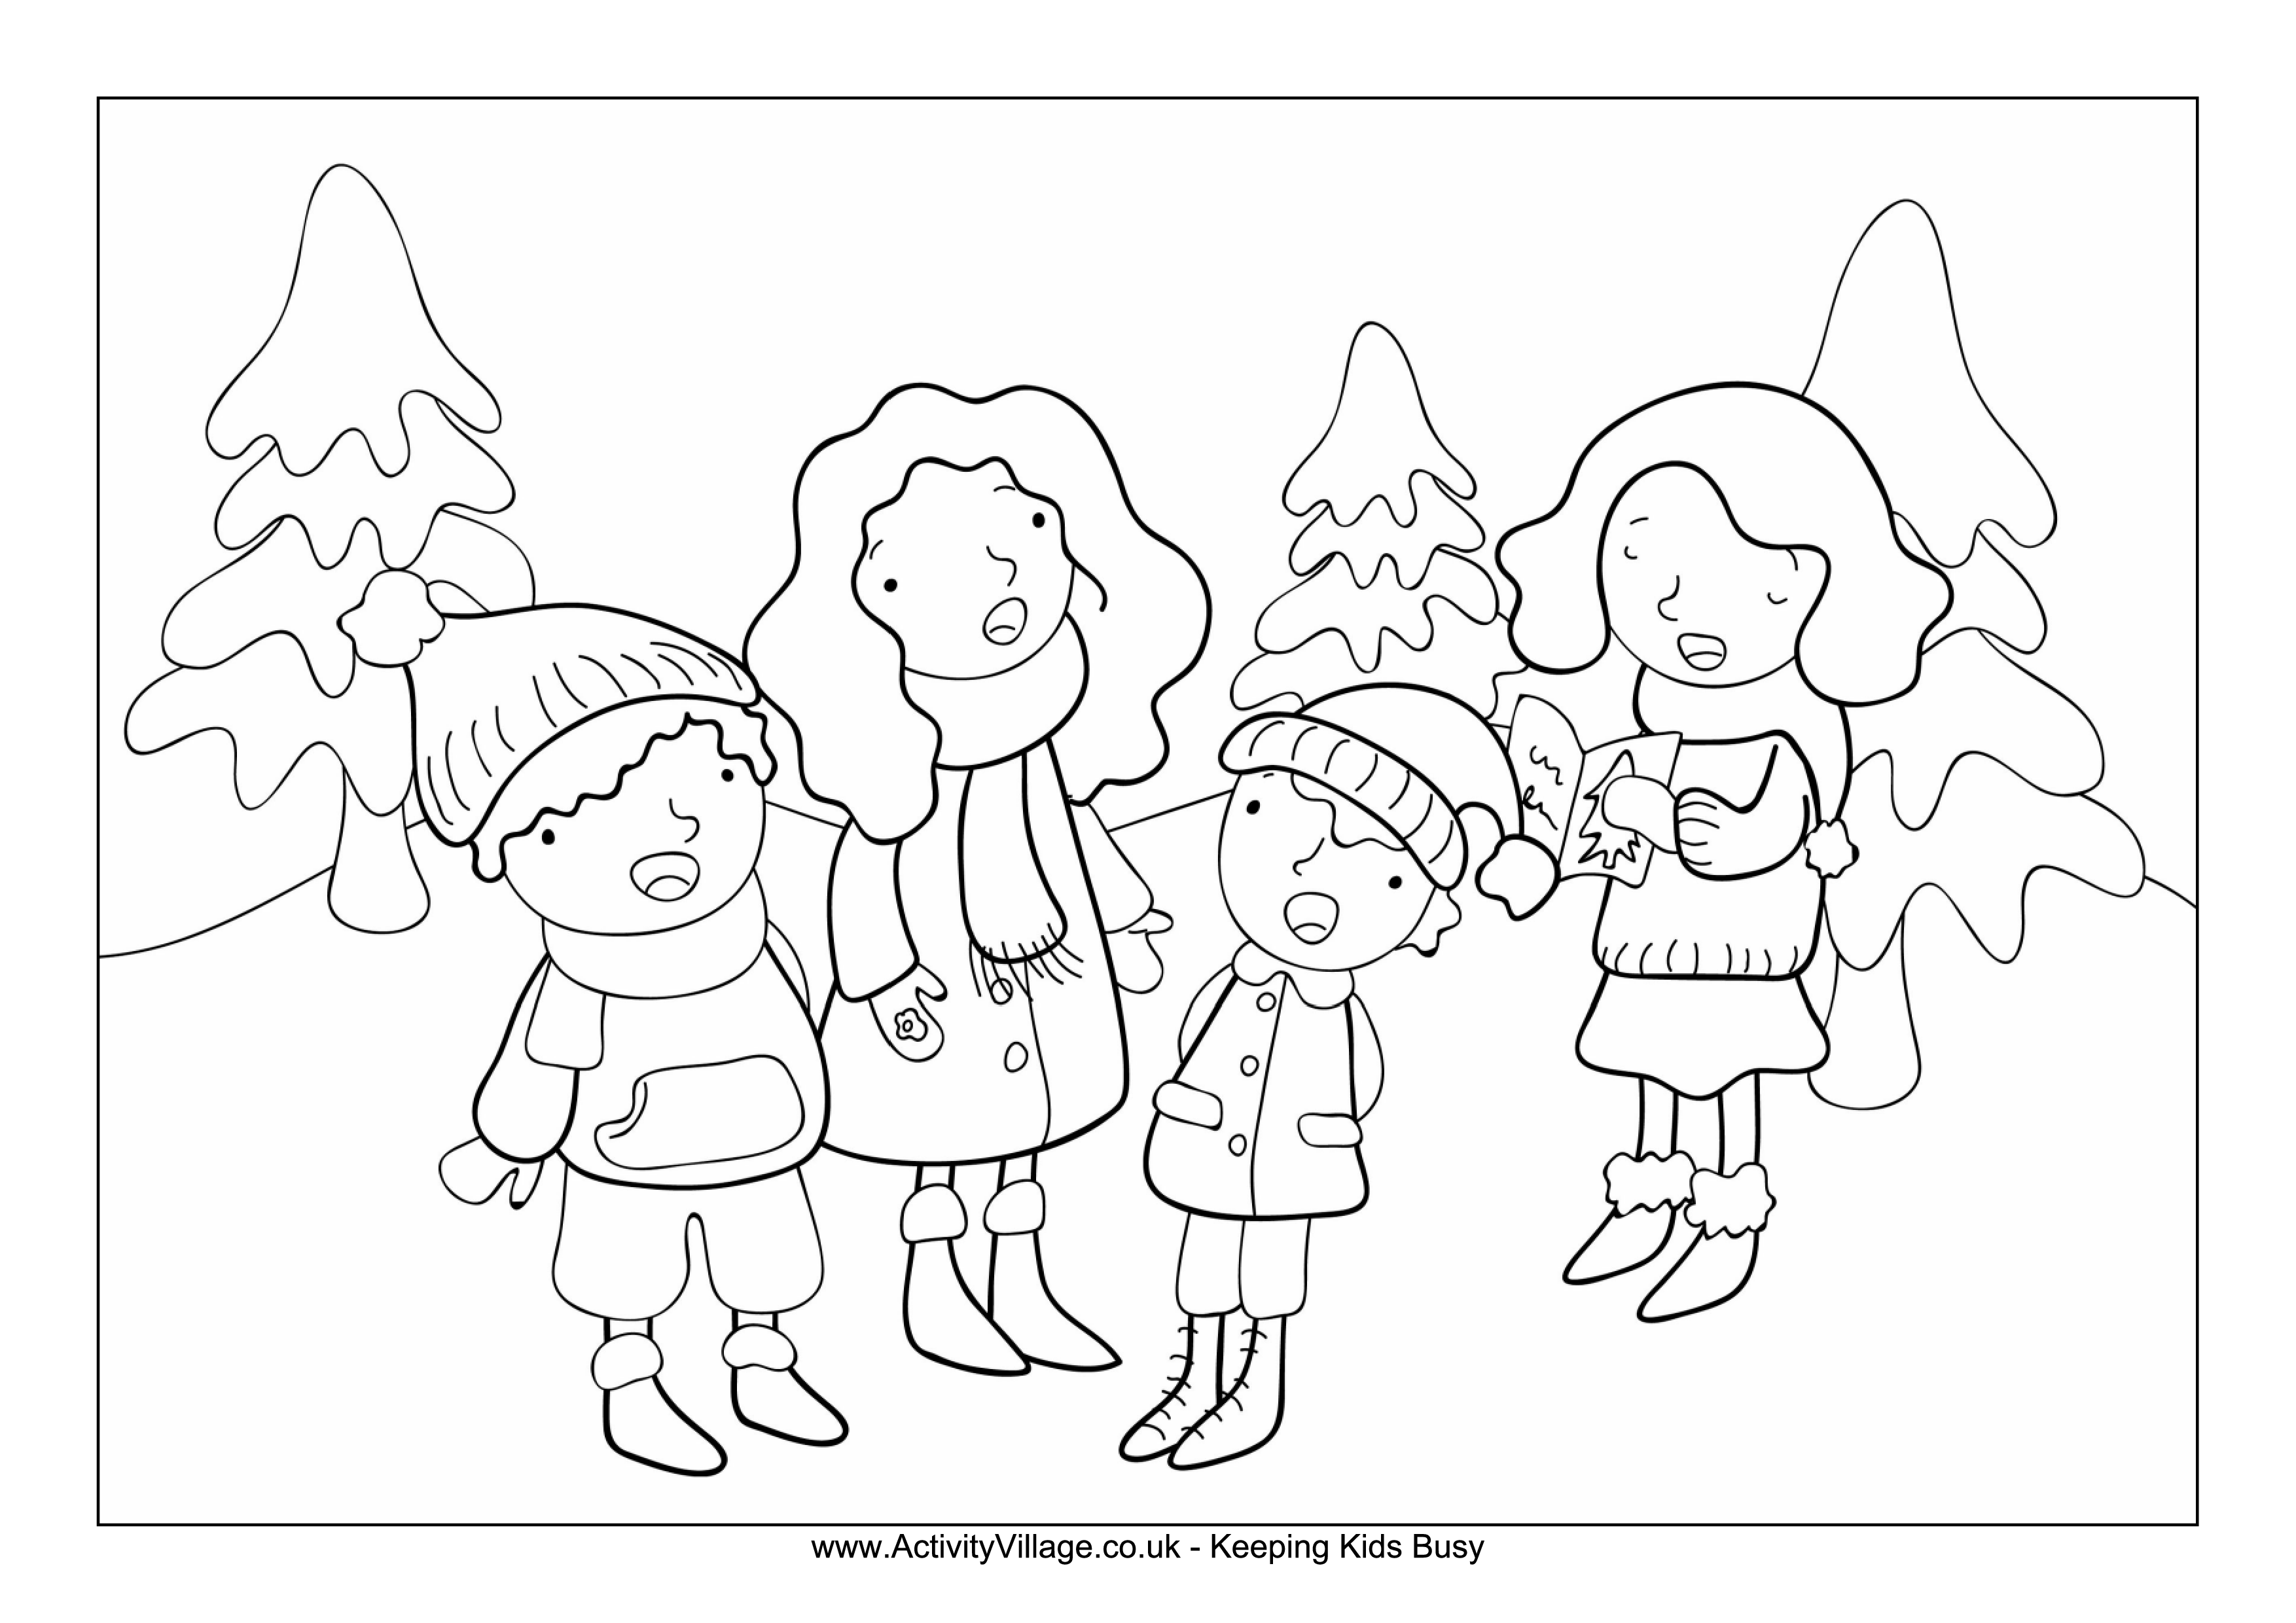 Free Christmas Coloring Page For Kids Templates At